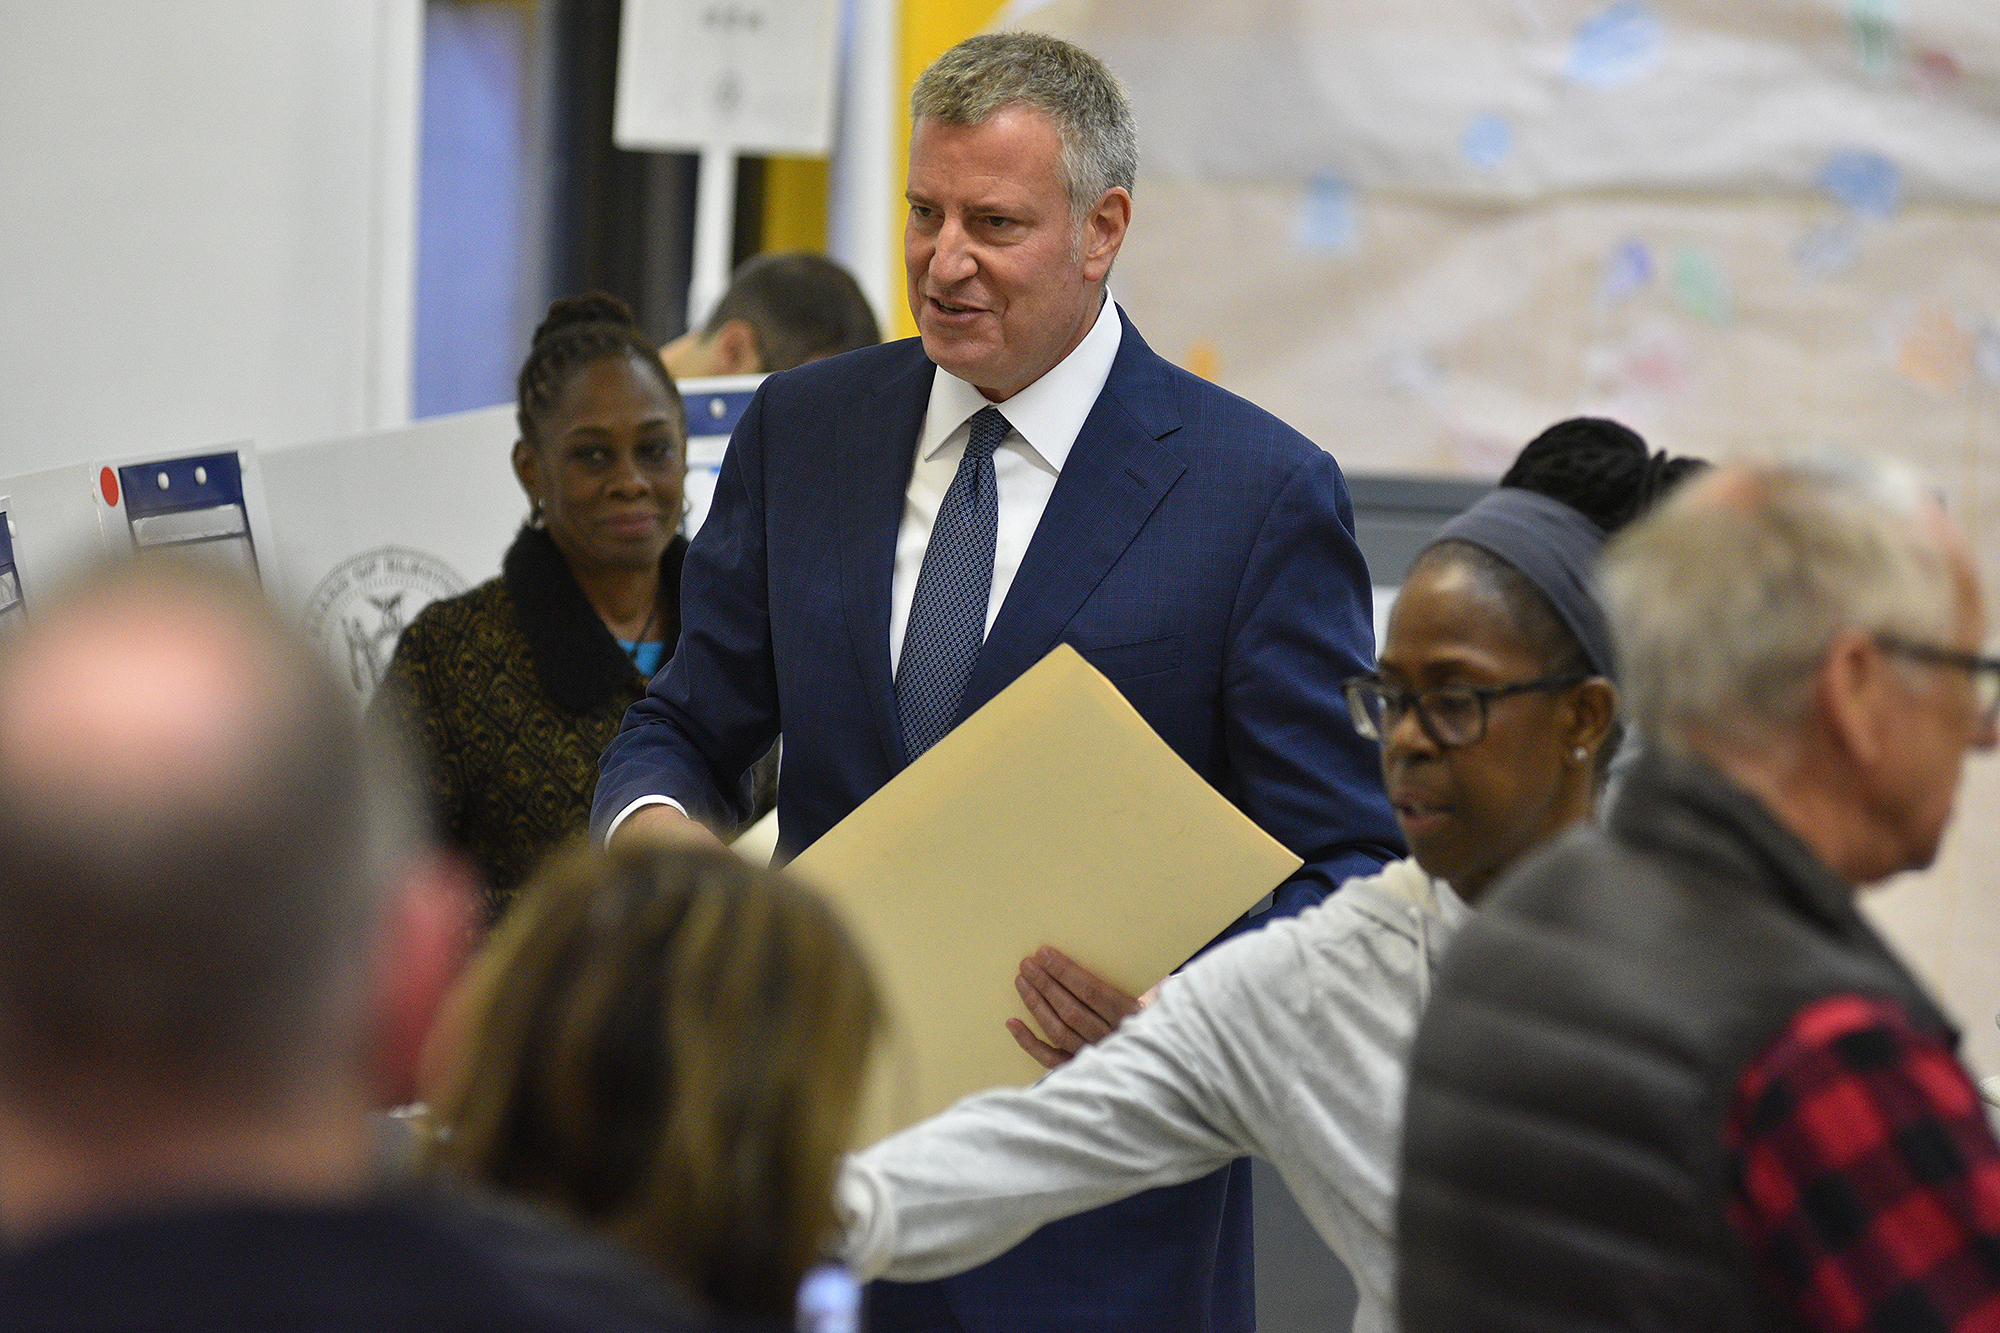 Mandatory Credit: Photo by Erik Pendzich/REX/Shutterstock (7426540i) Mayor Bill de Blasio prepares to cast his ballot in the US Presidential Election Voting in New York, USA - 08 Nov 2016 Bill De Blasio casted his vote at Park Slope Library at 431 6th Avenue, New York